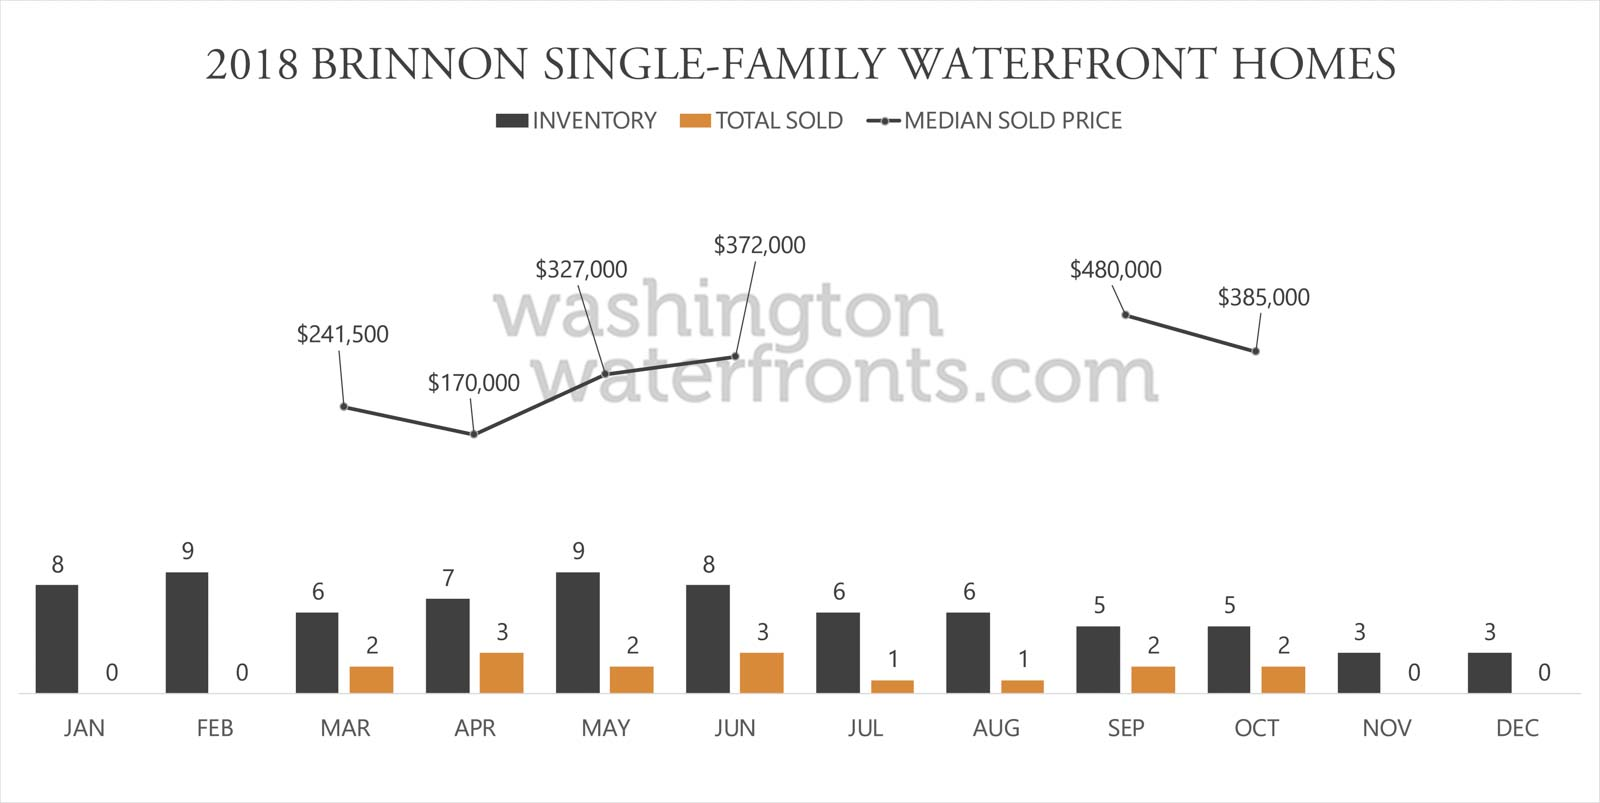 Brinnon Waterfront Inventory